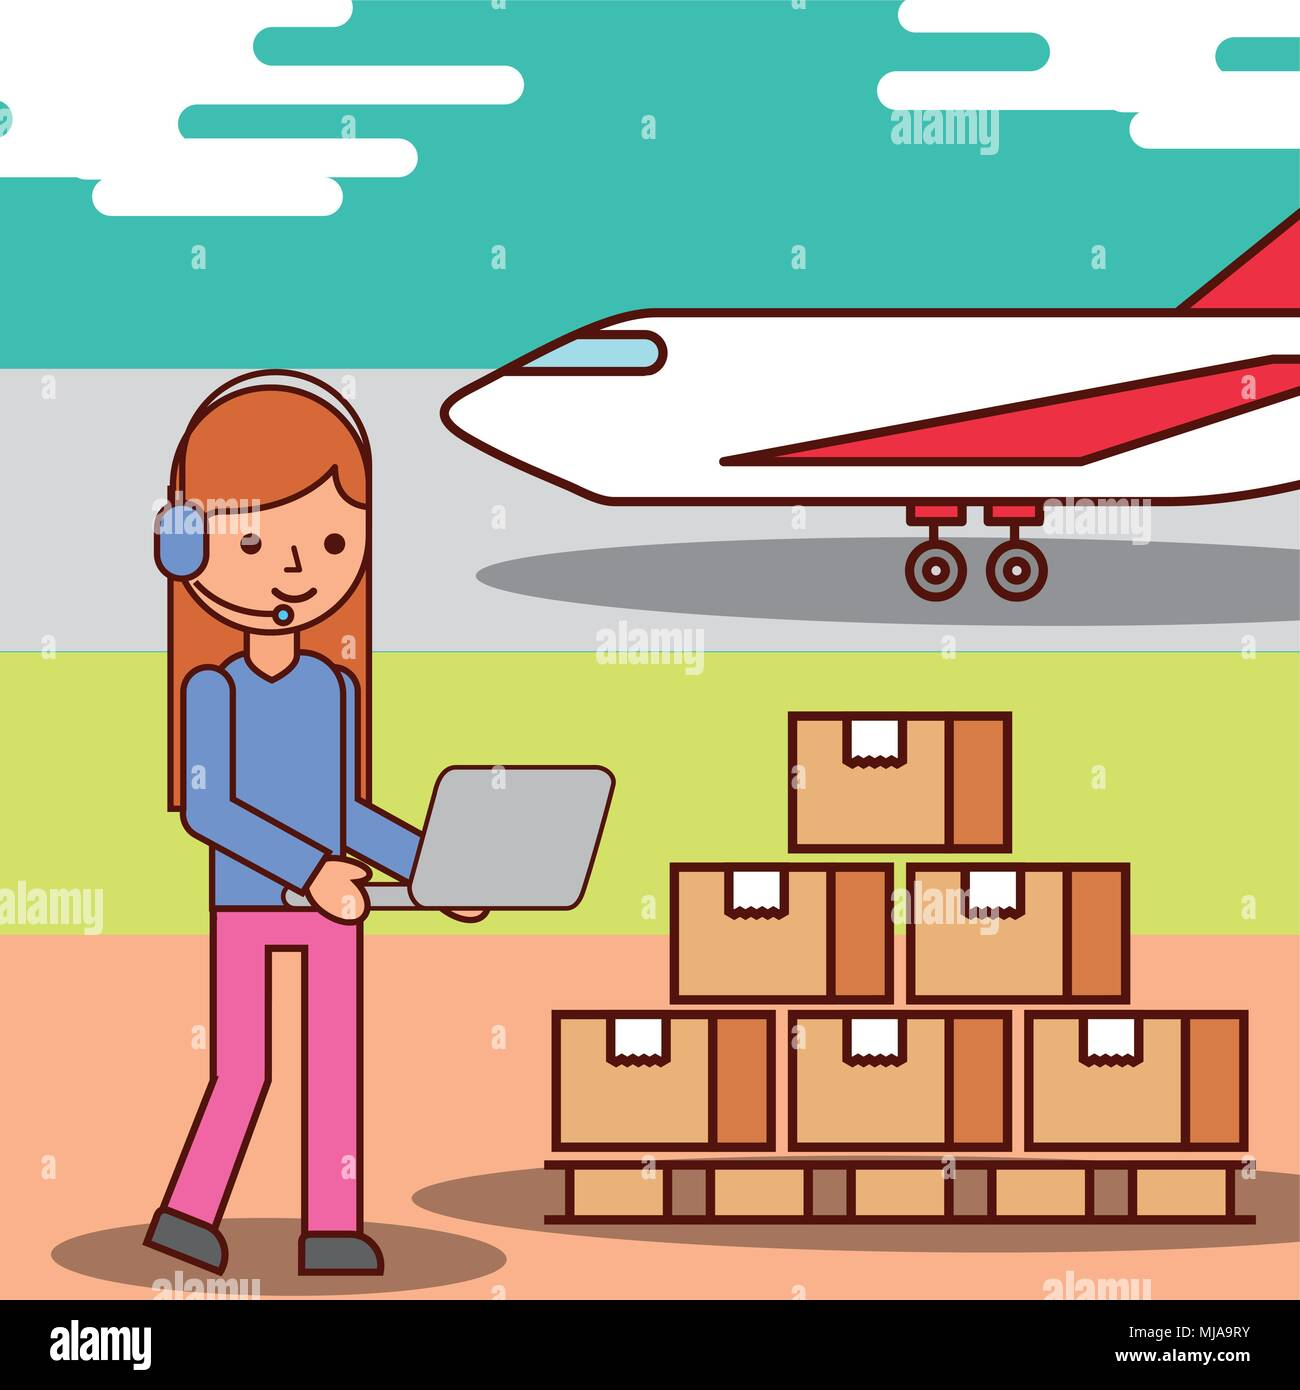 woman cartoon operator logistic cardboard boxes and plane transport - Stock Image